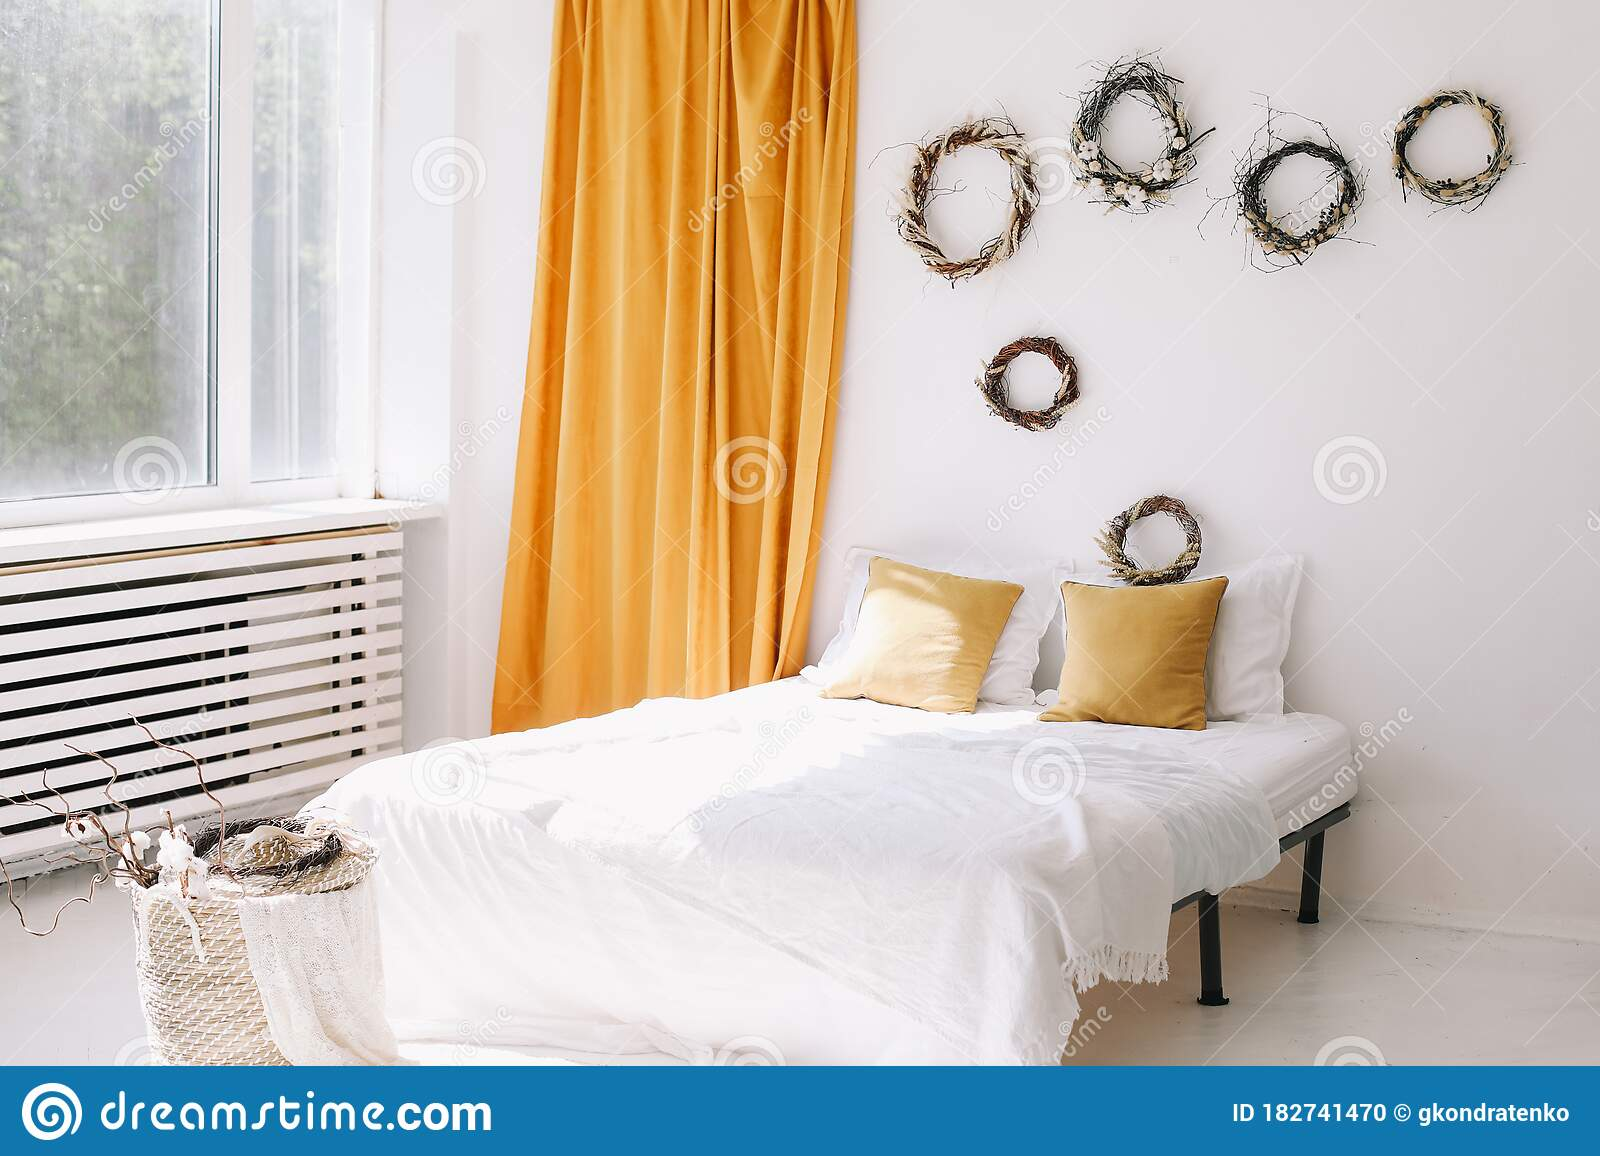 Modern Home Interior Design Cozy Bedroom With Wide Bed Pillows Curtains And Decorations Bedroom Interior Home Interior Decor Stock Photo Image Of Bedroom Elegant 182741470